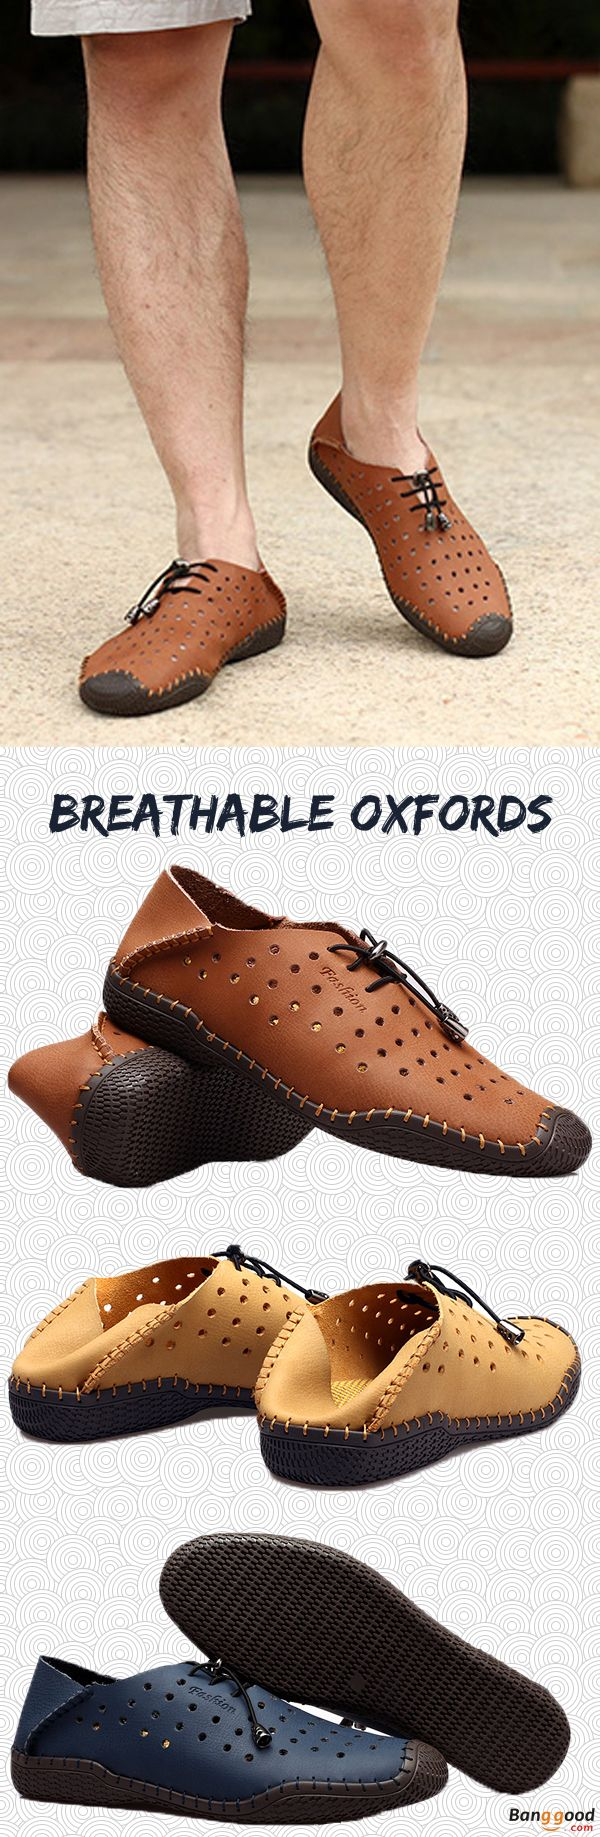 US$36.98 + Free shipping. Men Leather Shoes, Casual Leather Shoes, Hollow Out Shoes, Outdoor Shoes, Breathable Shoes, Mesh Oxfords. Color: Brown, Dark Blue, Yellow. Upper Material: Top Split Leather. Check Out this Casual Style Leather Shoes.